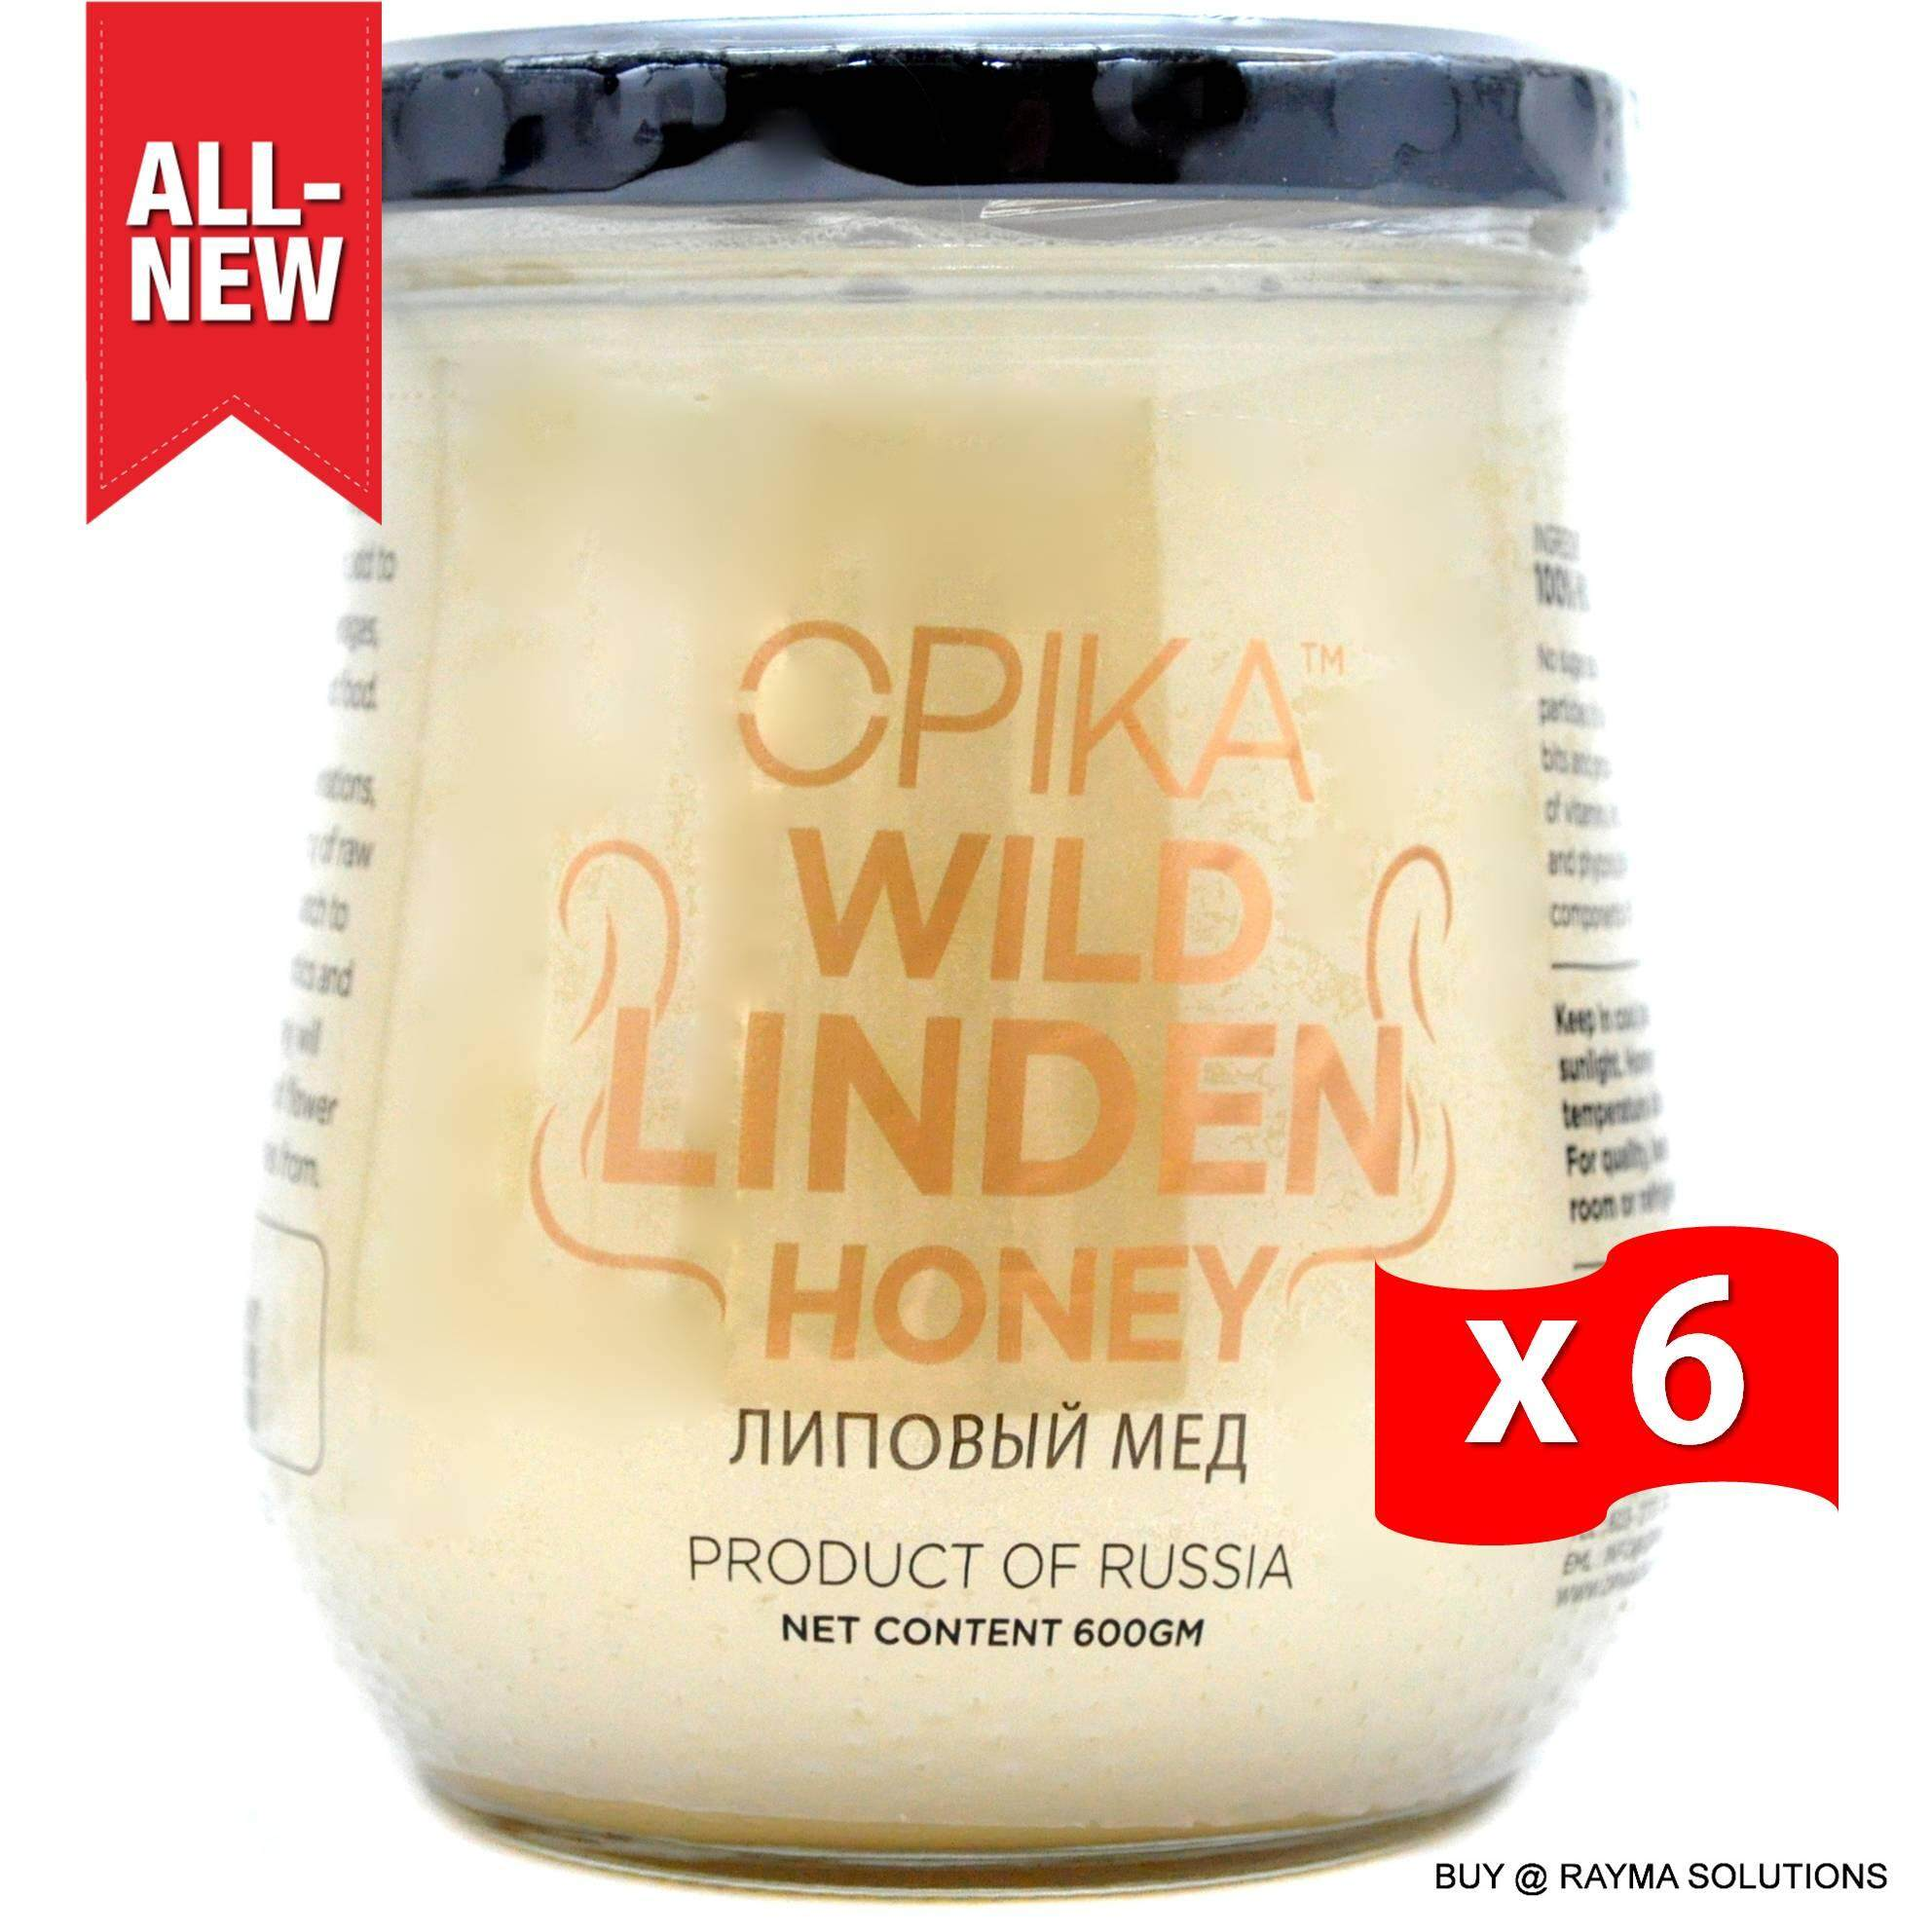 [BEST DEAL] OPIKA Wild Linden Russian Honey, 600g (6 Jars)